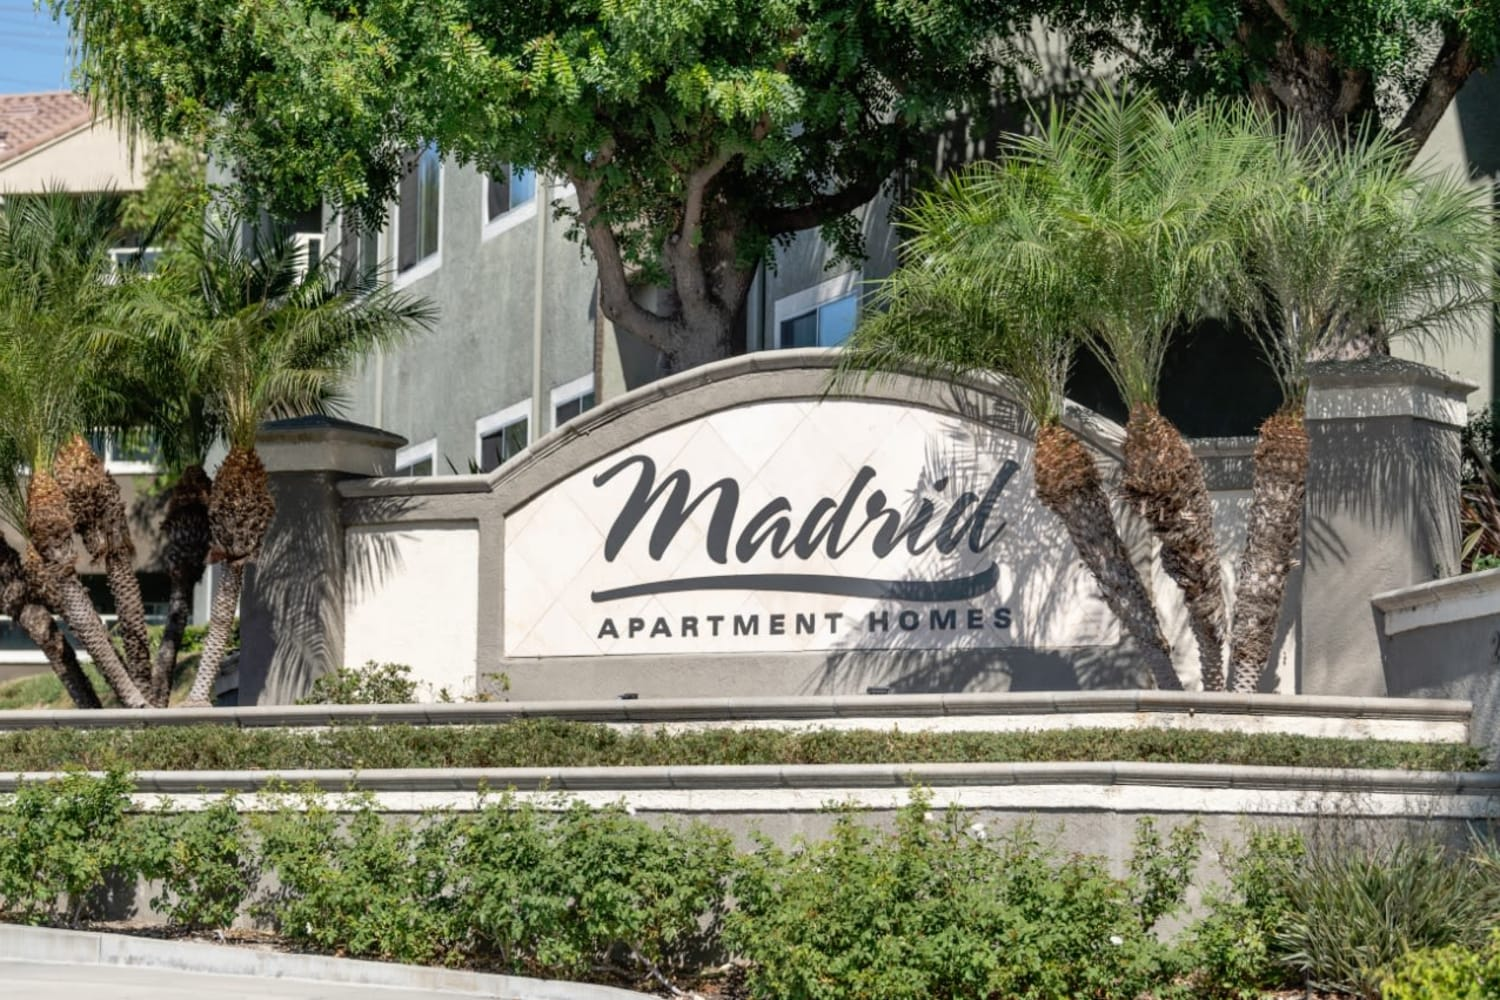 Madrid Apartments front entrance sign in Mission Viejo, California